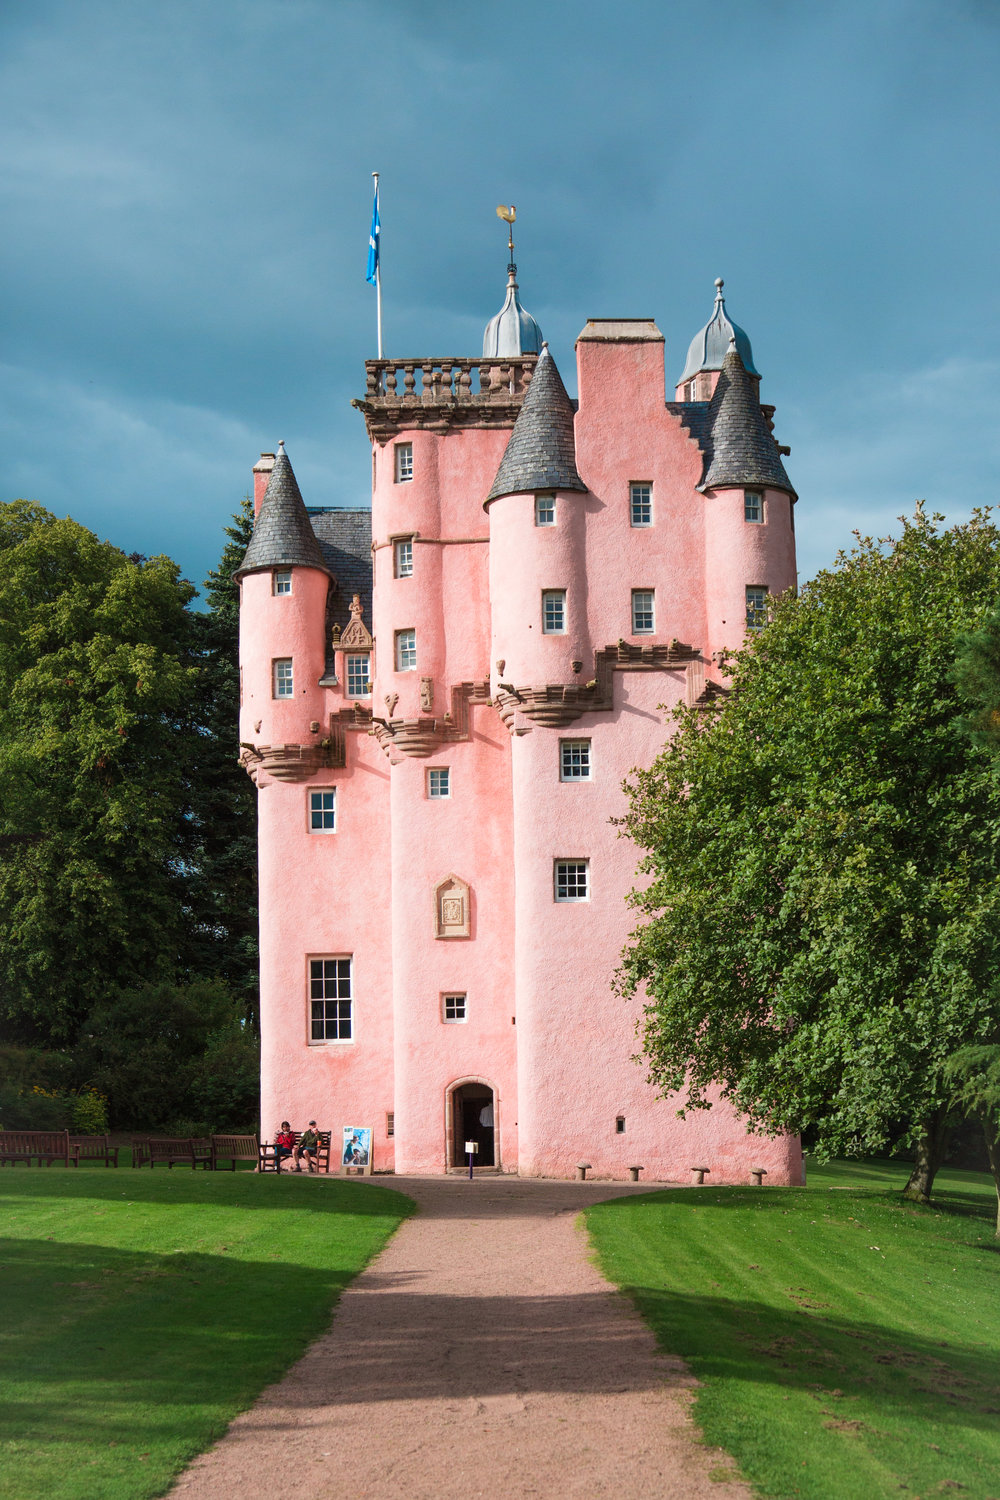 Yes! There are hundreds of castles in Scotland, but we could not possibly visit all of them, so we chose the best, famous and intriguing one! So here's the Craigievar Castle, formally housed the Forbes family and now owned by the National Trust for Scotland. The pinkish fairytale castle reminded me of the simplified version of the Walt Disney castle, a striking architecture that stands out amongst massive farmlands and walkways from afar. With phases of conservation efforts, the contents of the castle such as the different bedrooms are lovingly preserved over three centuries till today.